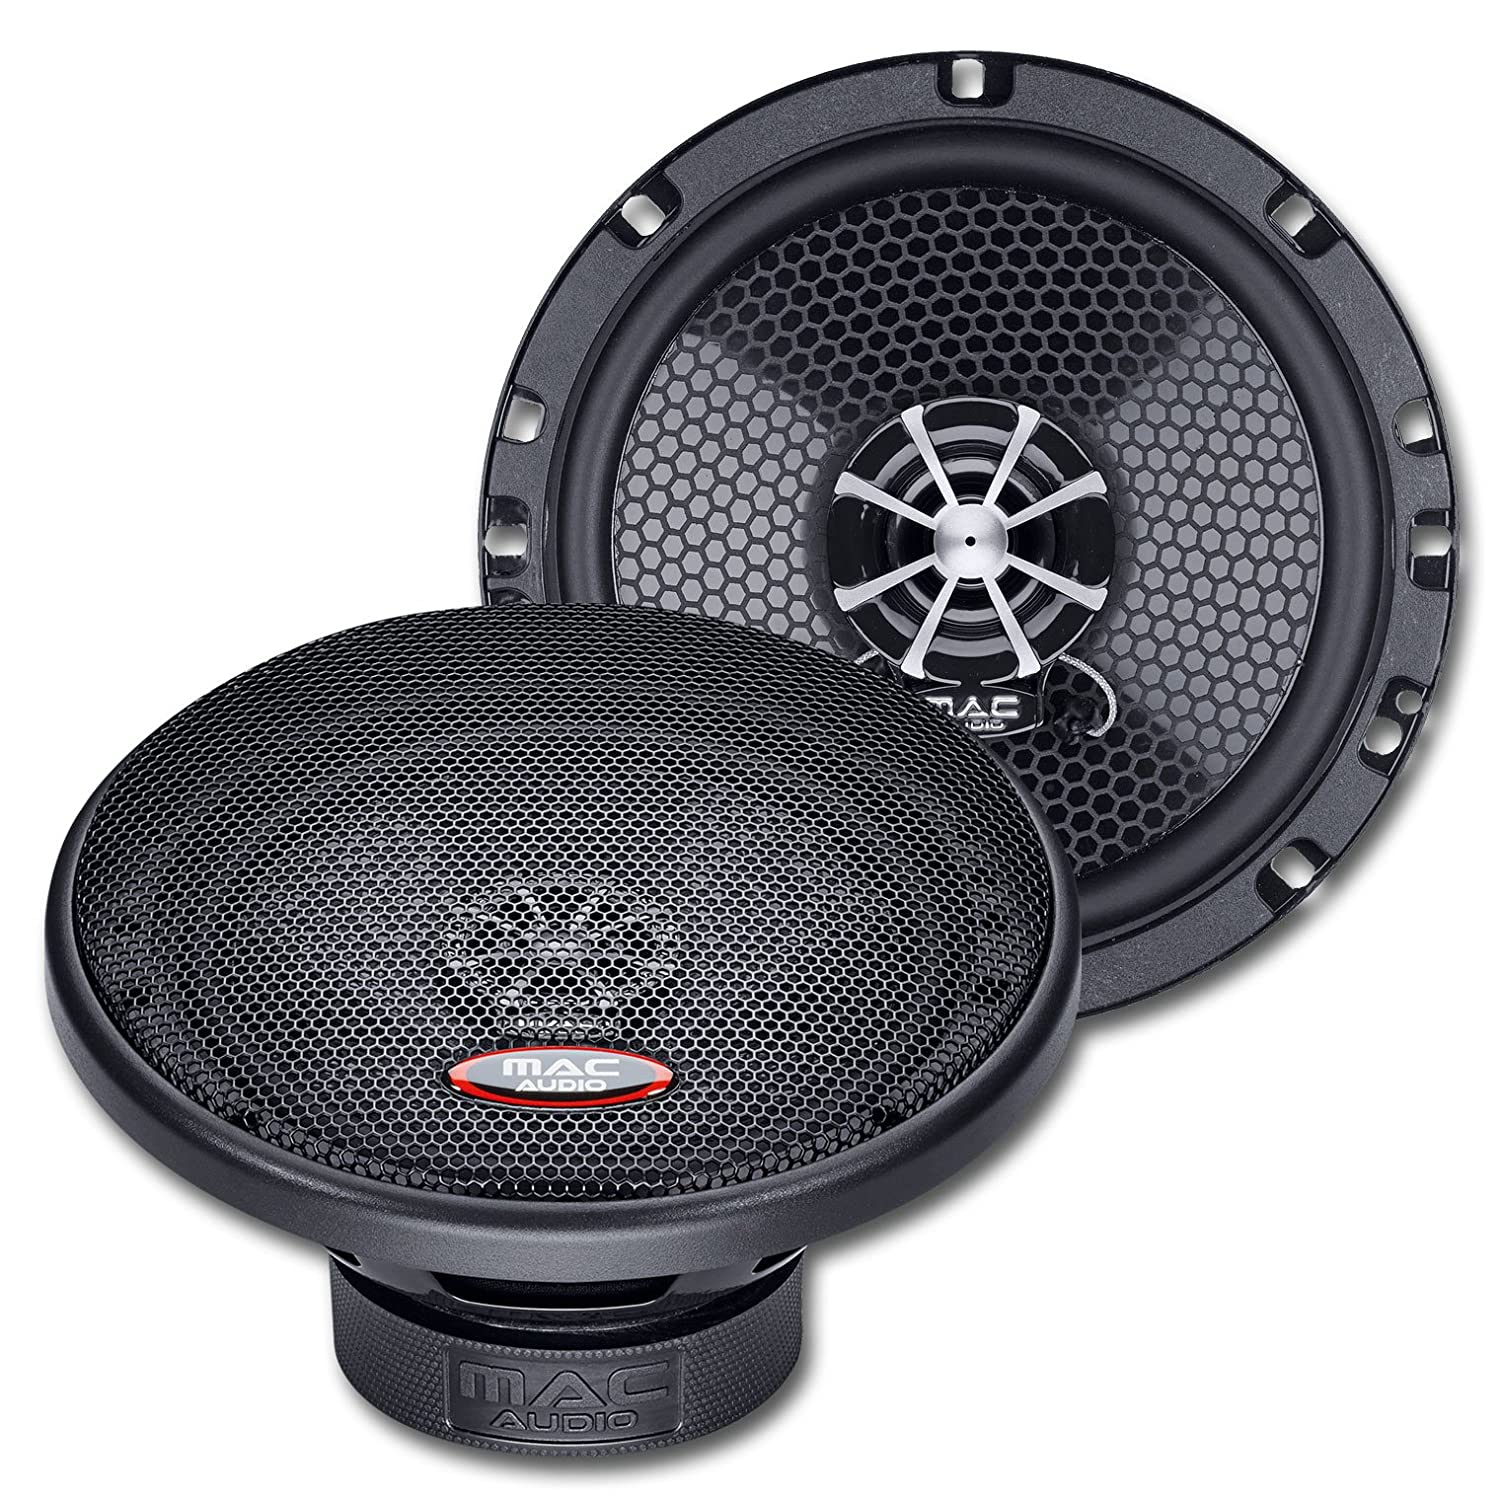 Mac Audio 1104934 Performance  X 16.2 Haut-parleur systè me coaxial 2  voies